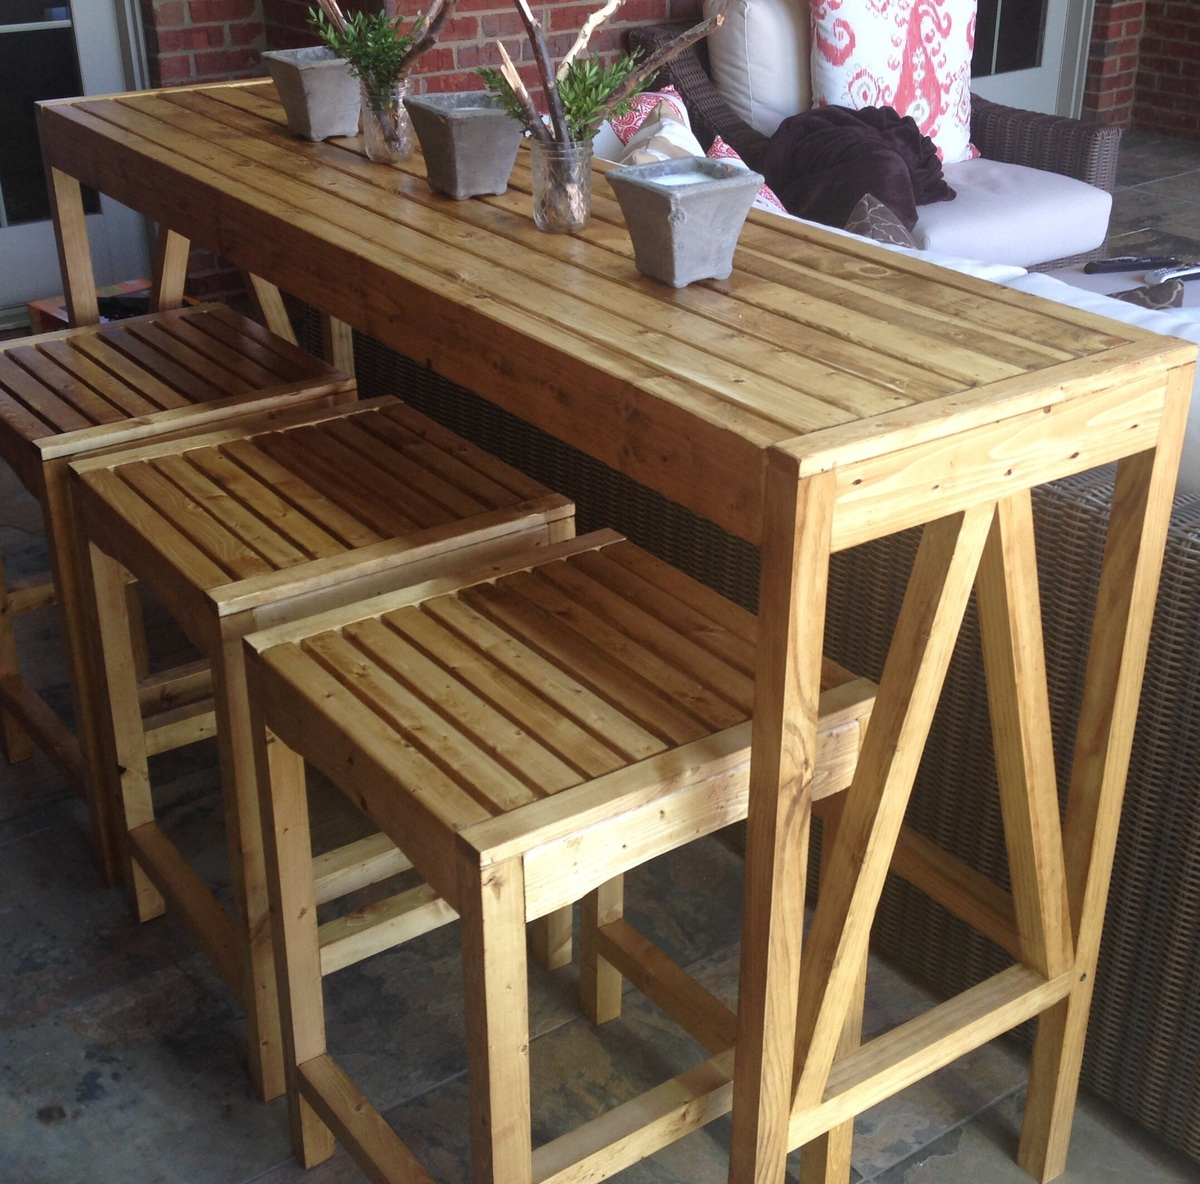 Ana white sutton custom outdoor bar stools diy projects sutton custom outdoor bar stools watchthetrailerfo